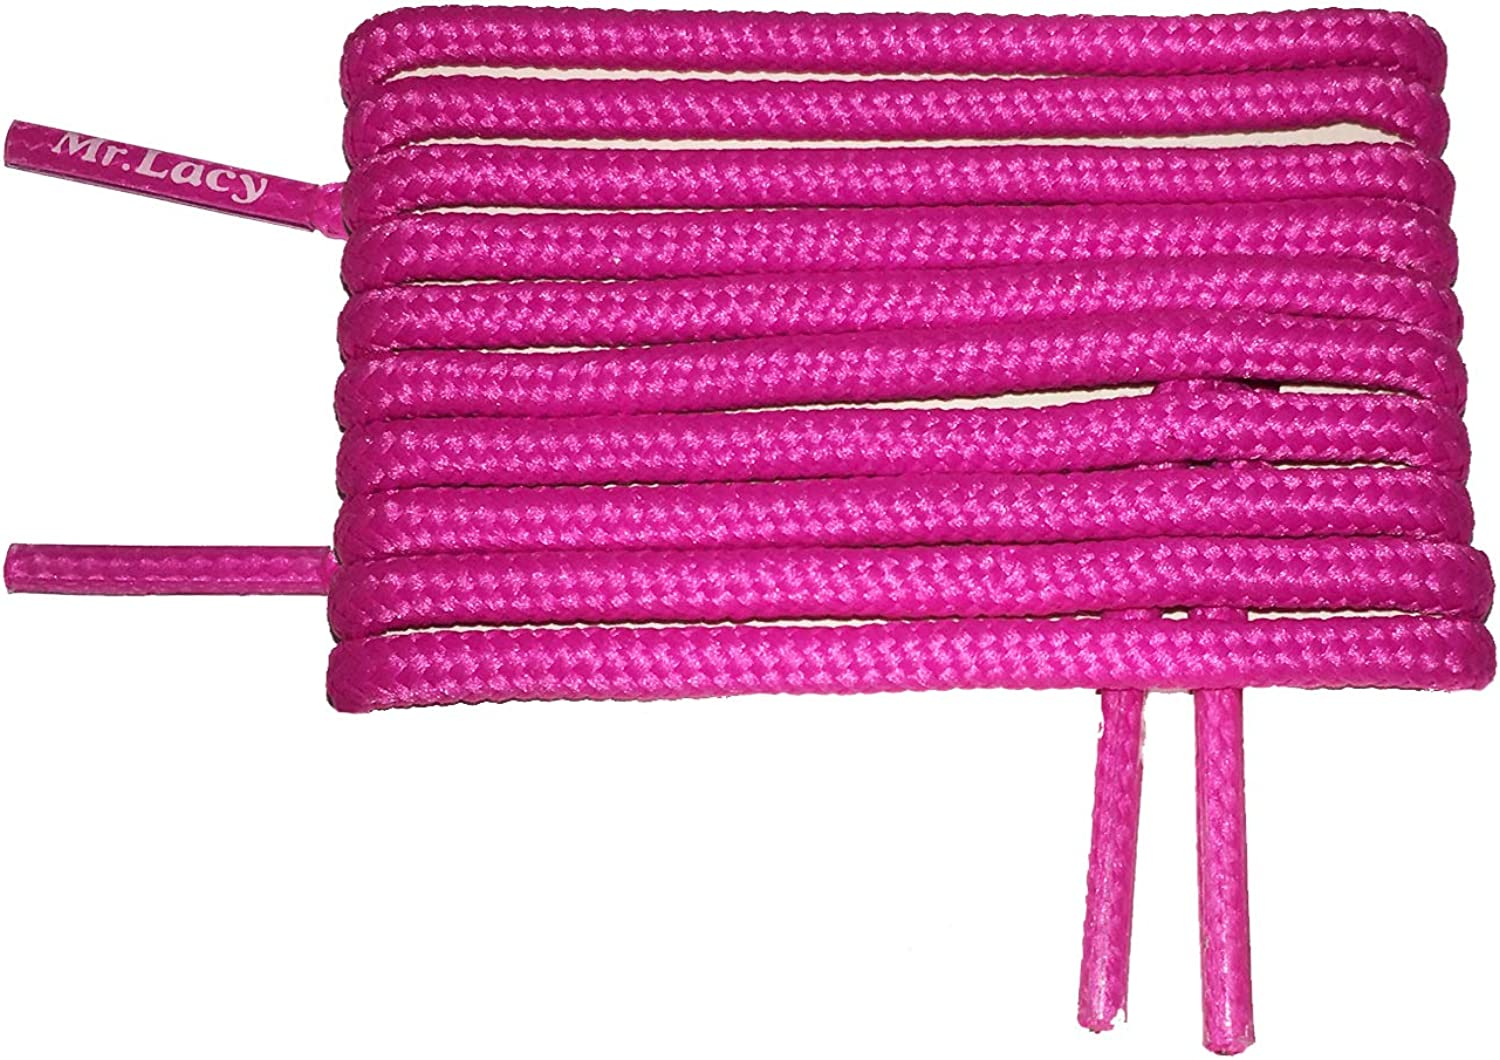 Laces Mr Lacy Pastel Pink Flat laces for sport sneakers and kids